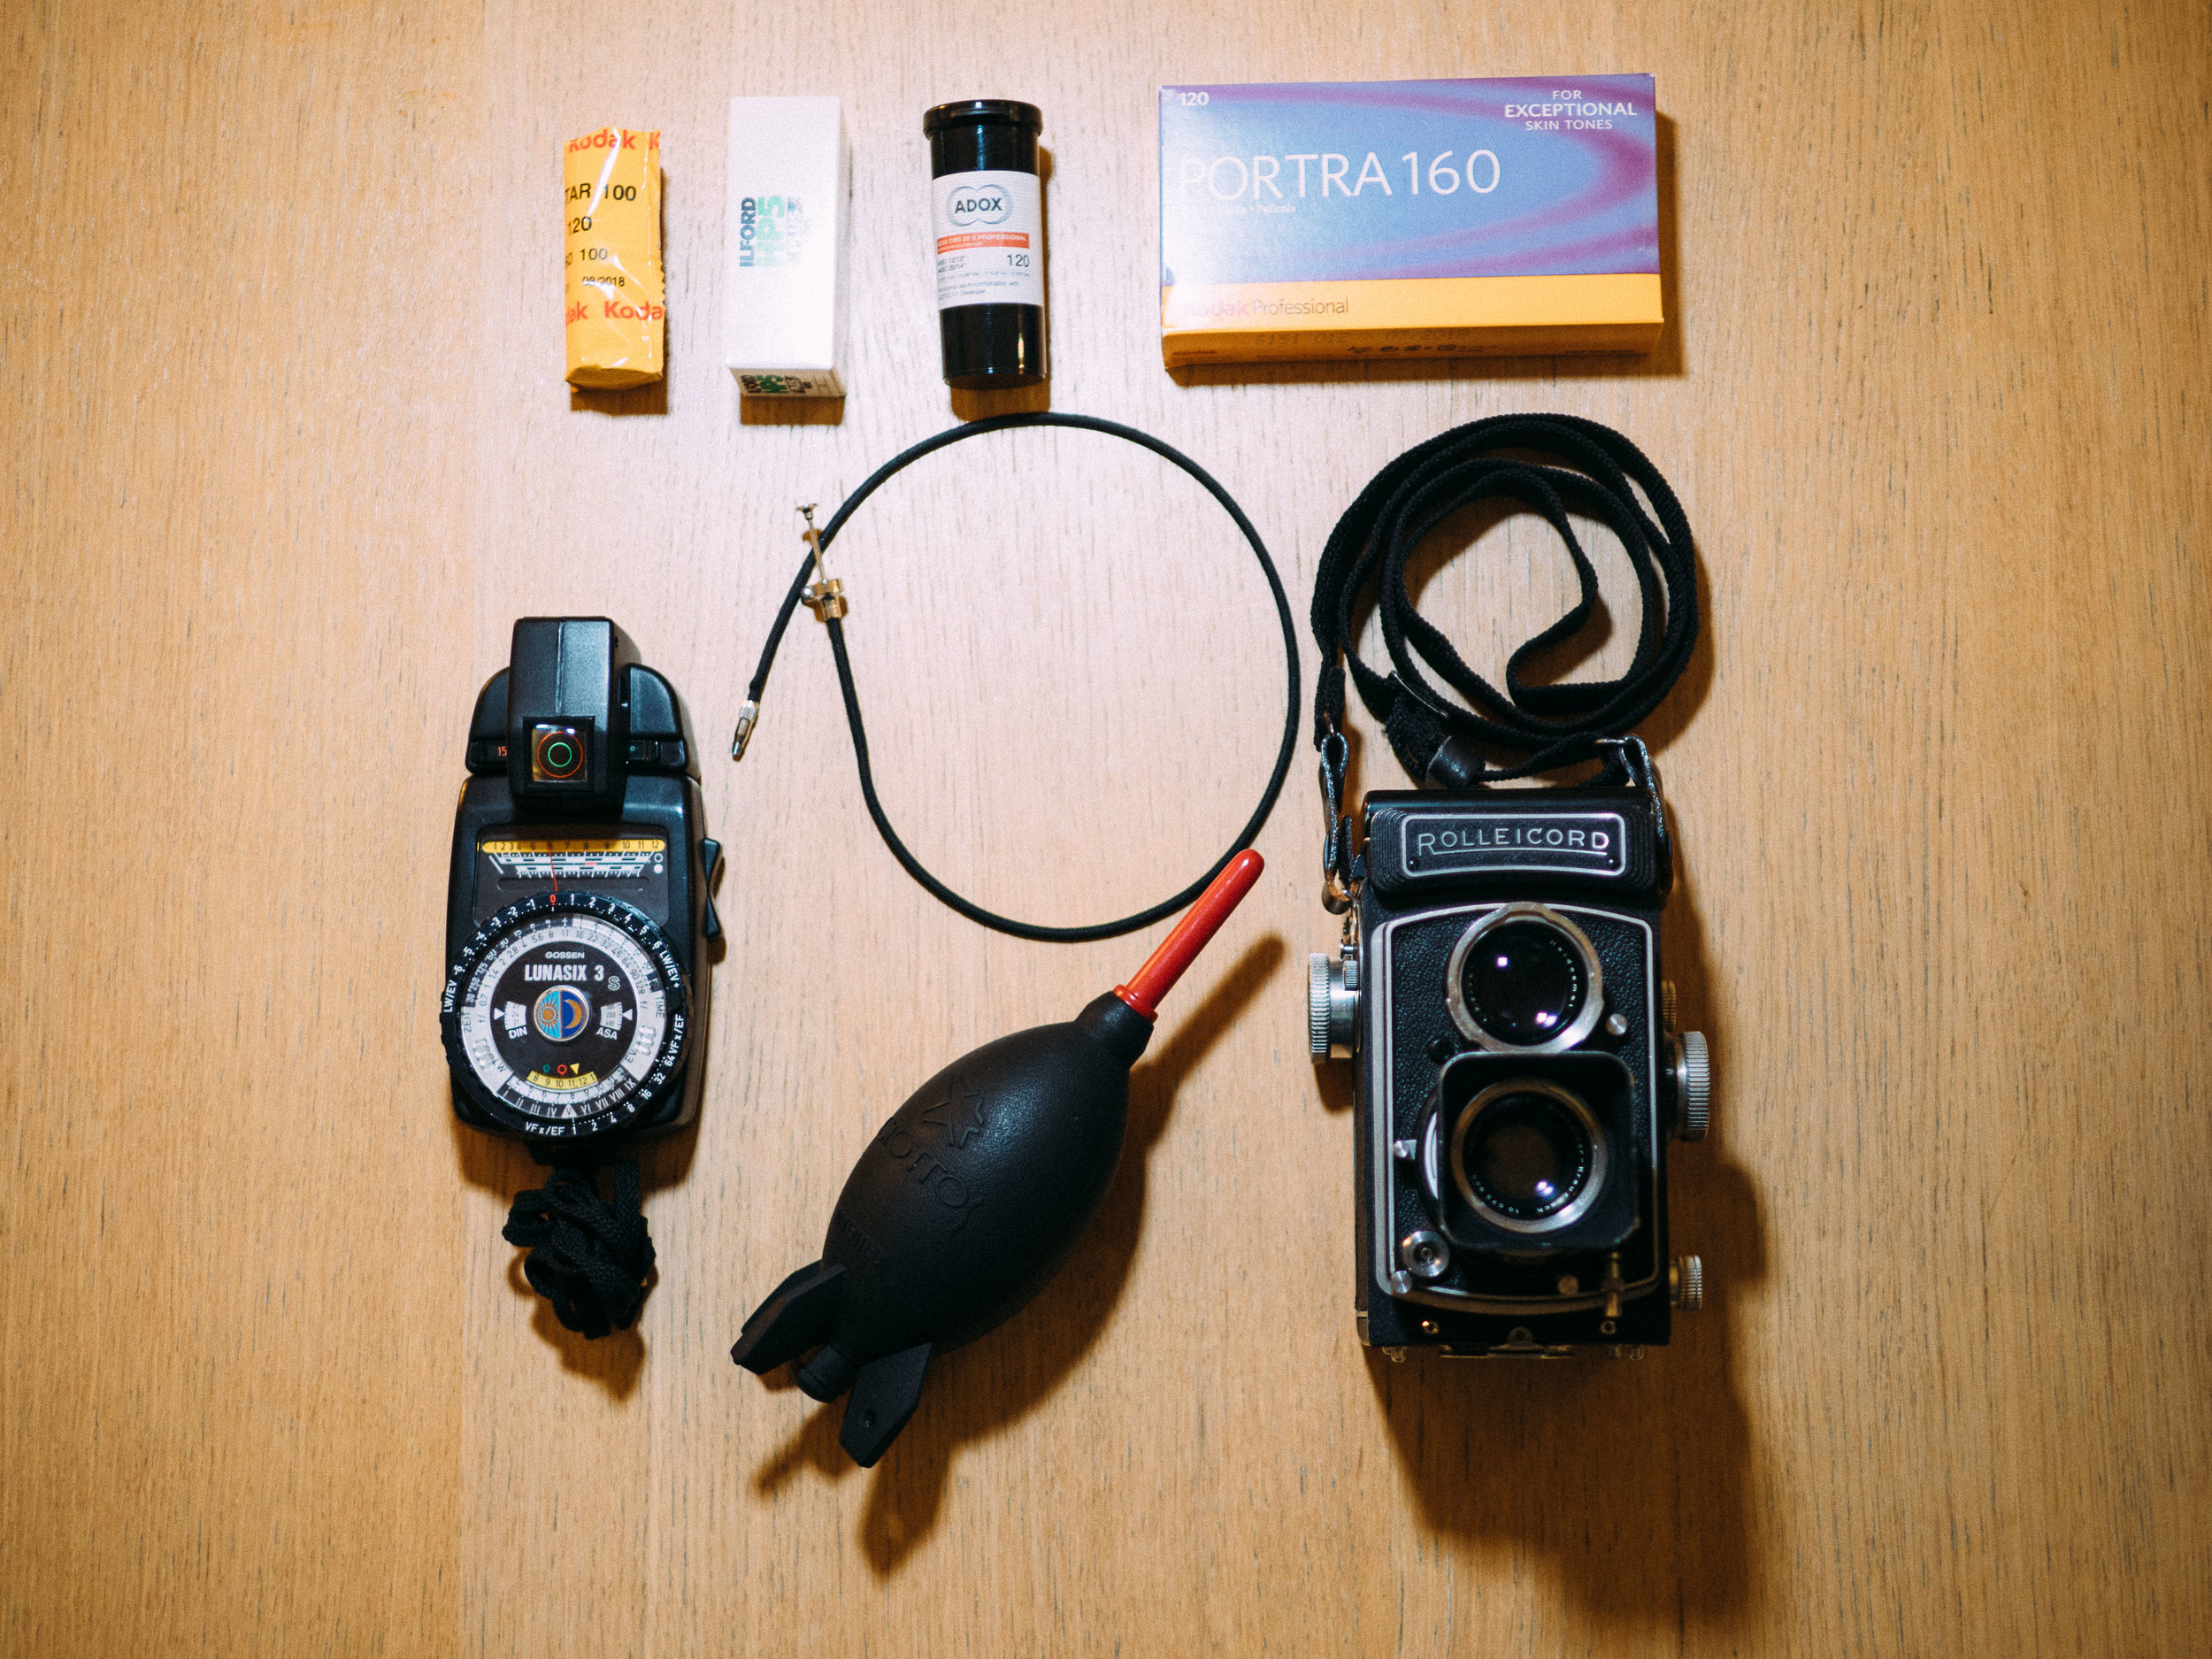 Rolleicord, 120 film and some useful accessories.